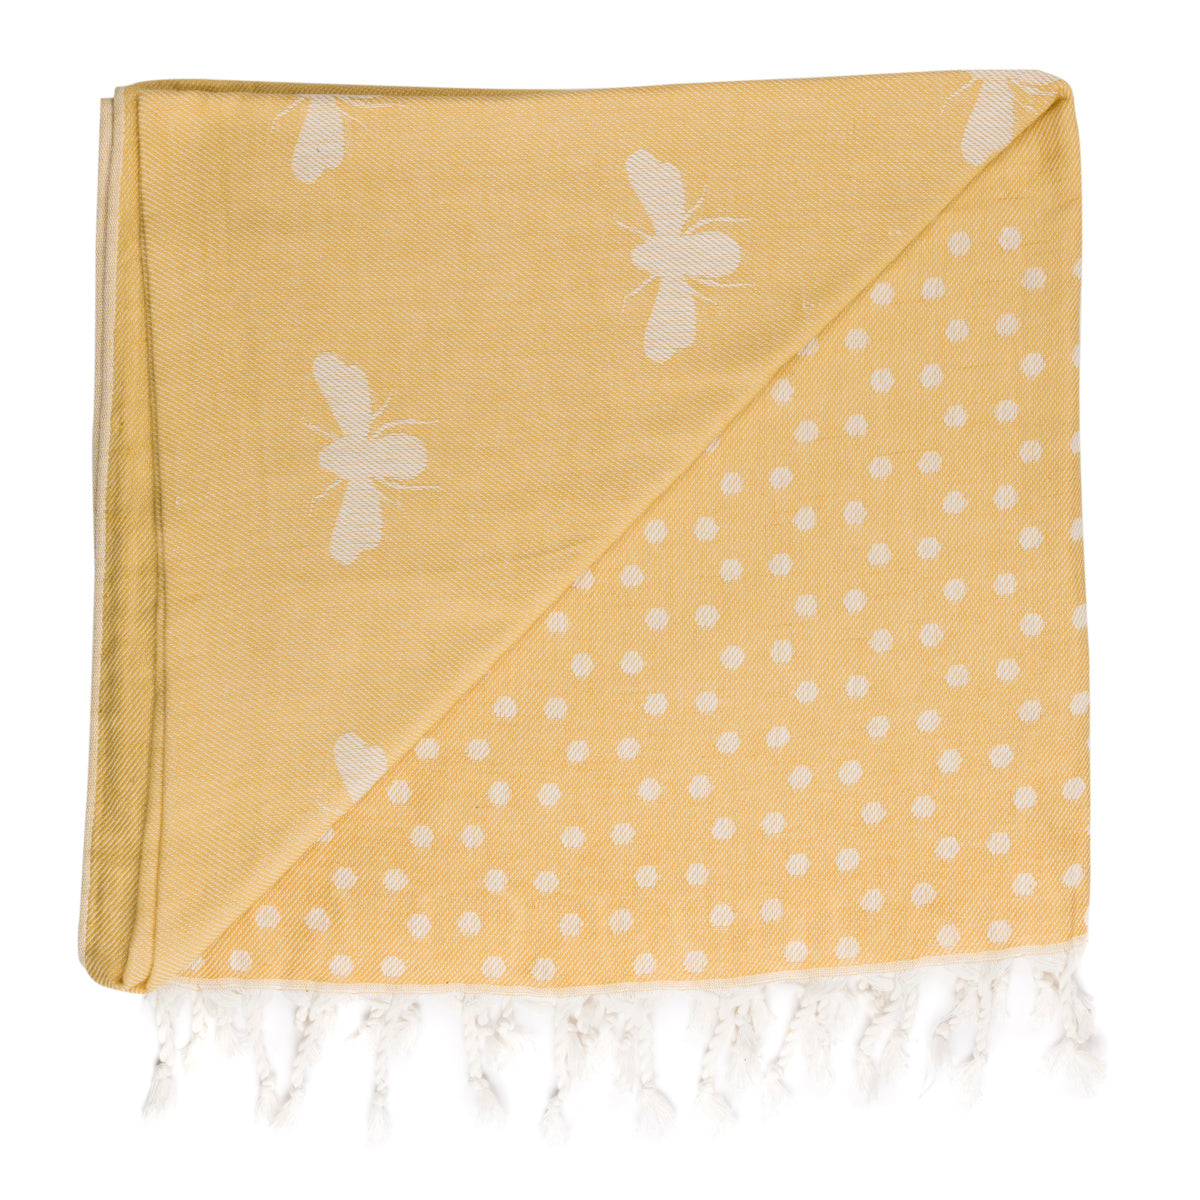 Soft yellow hammam towel in Sophie Allports Bee design.